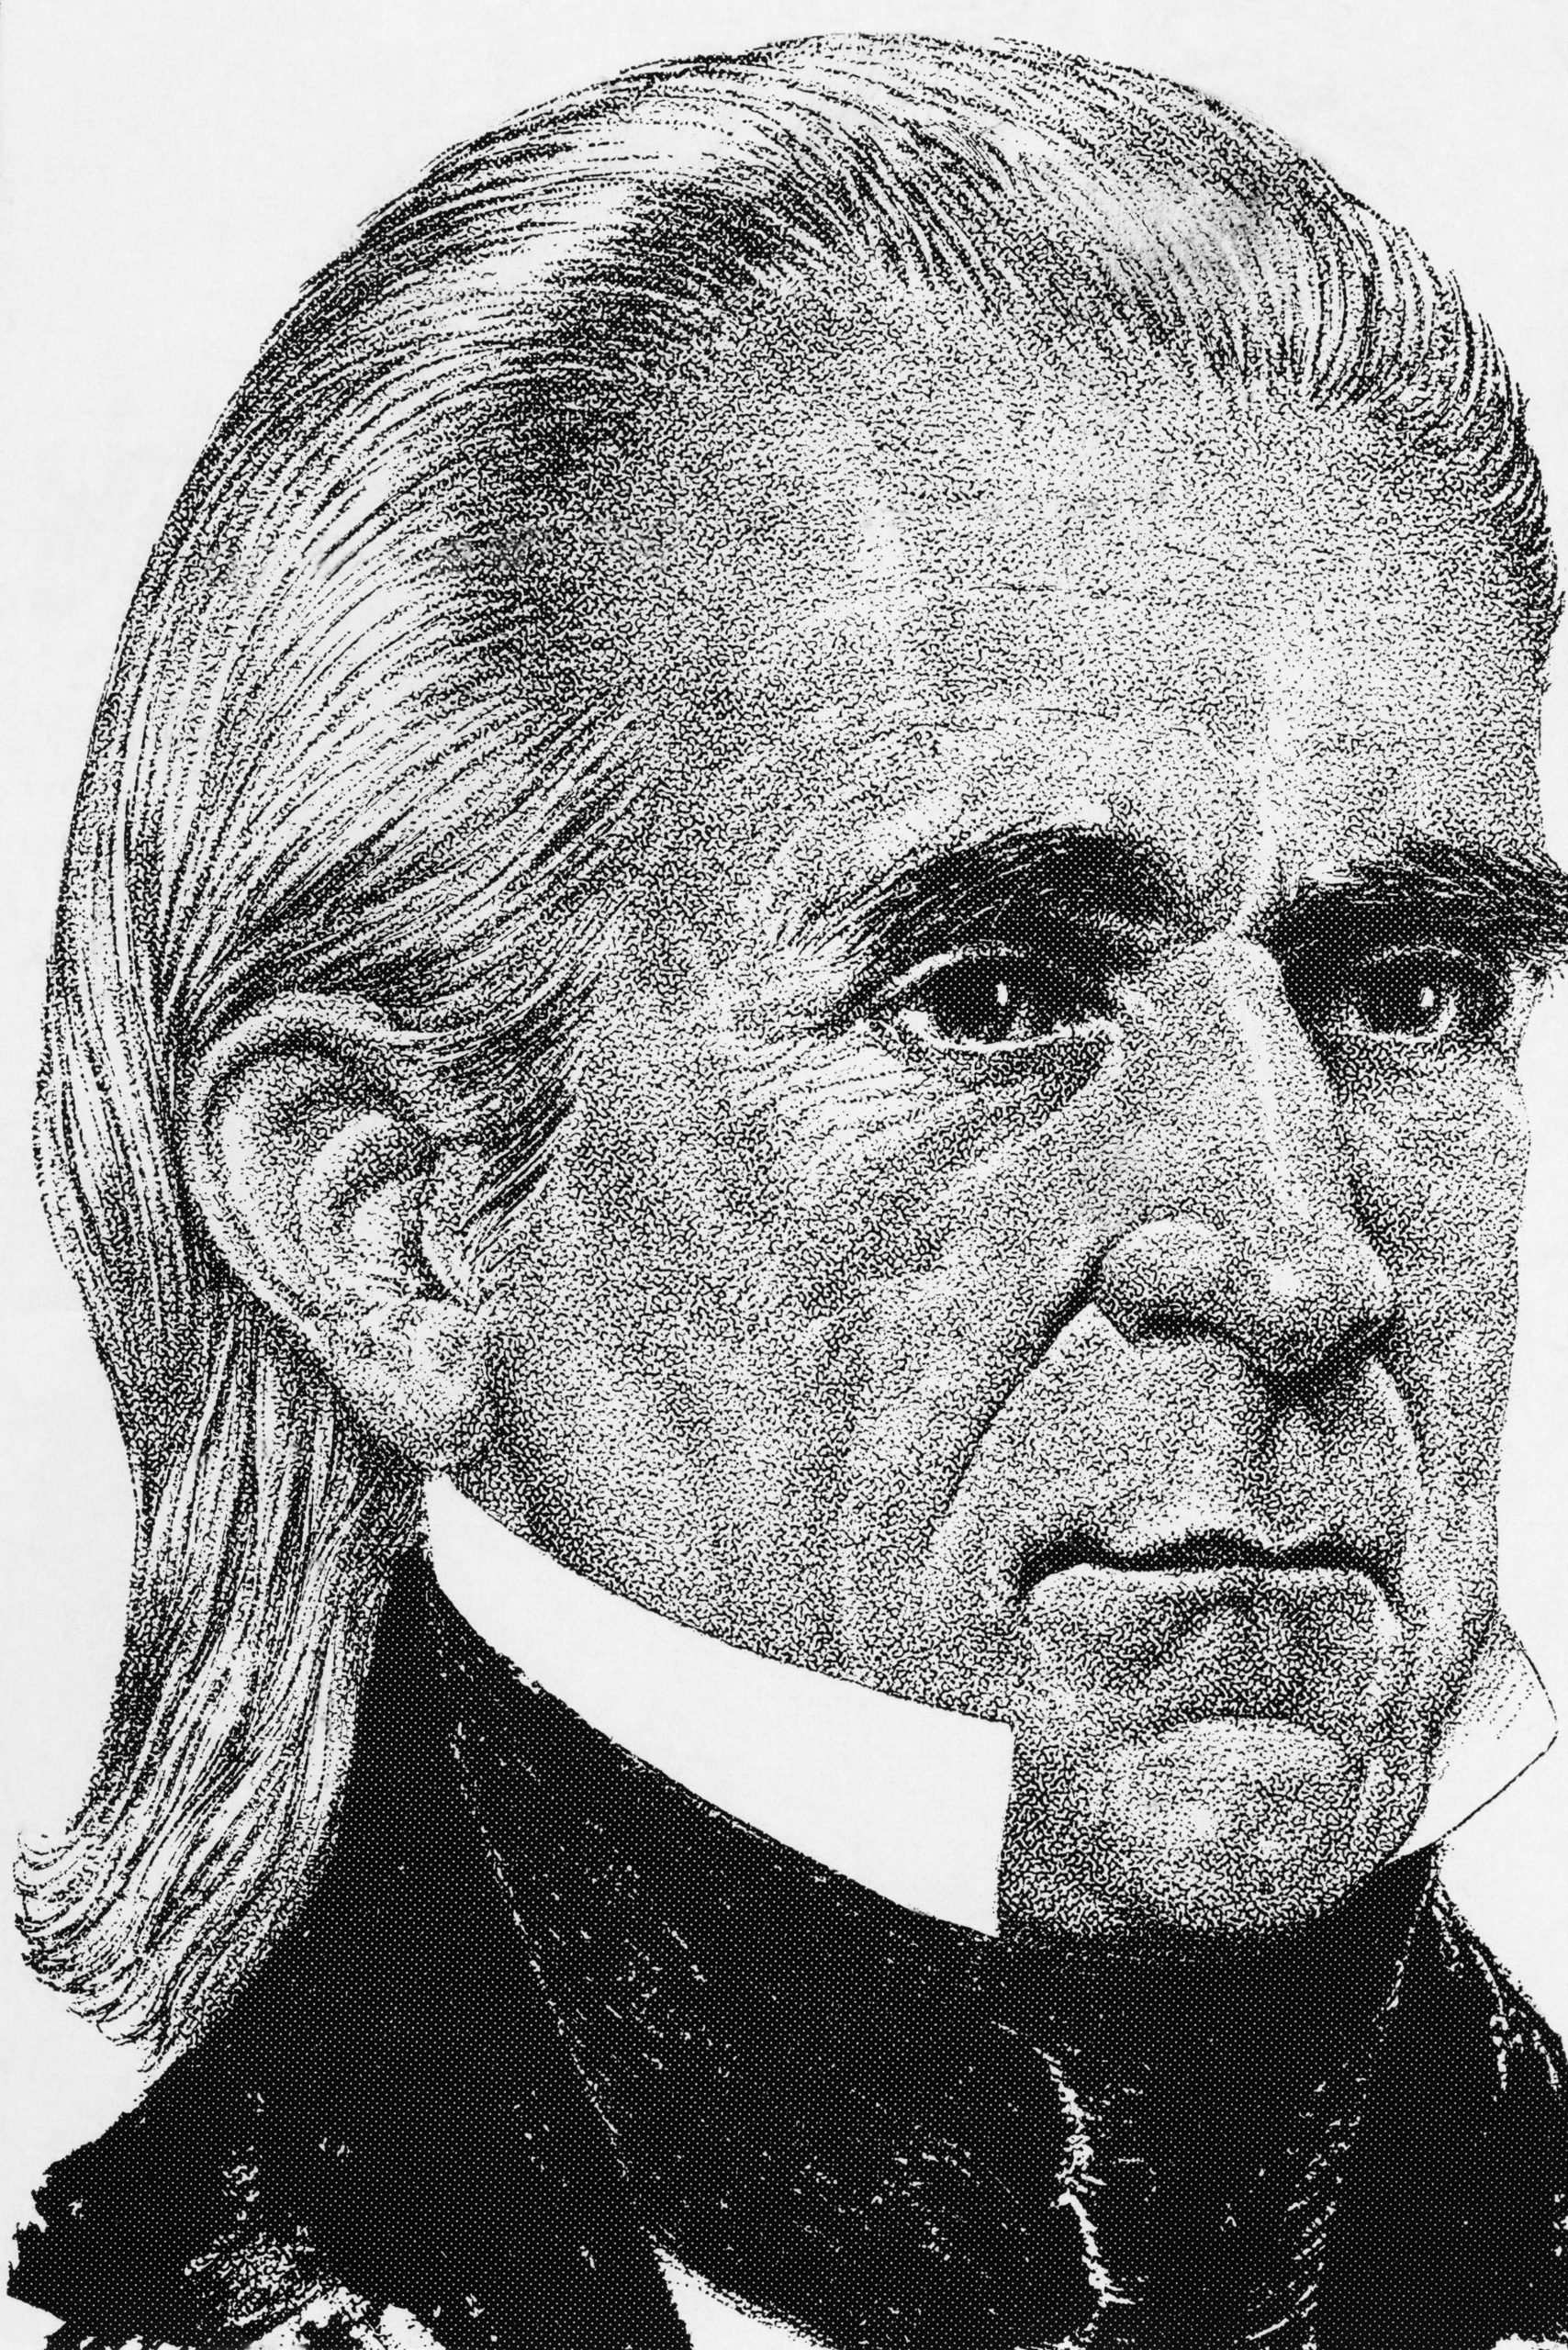 He was the 11th president of the United States, known for his territorial expansion of the nation chiefly through the Mexican-American War.